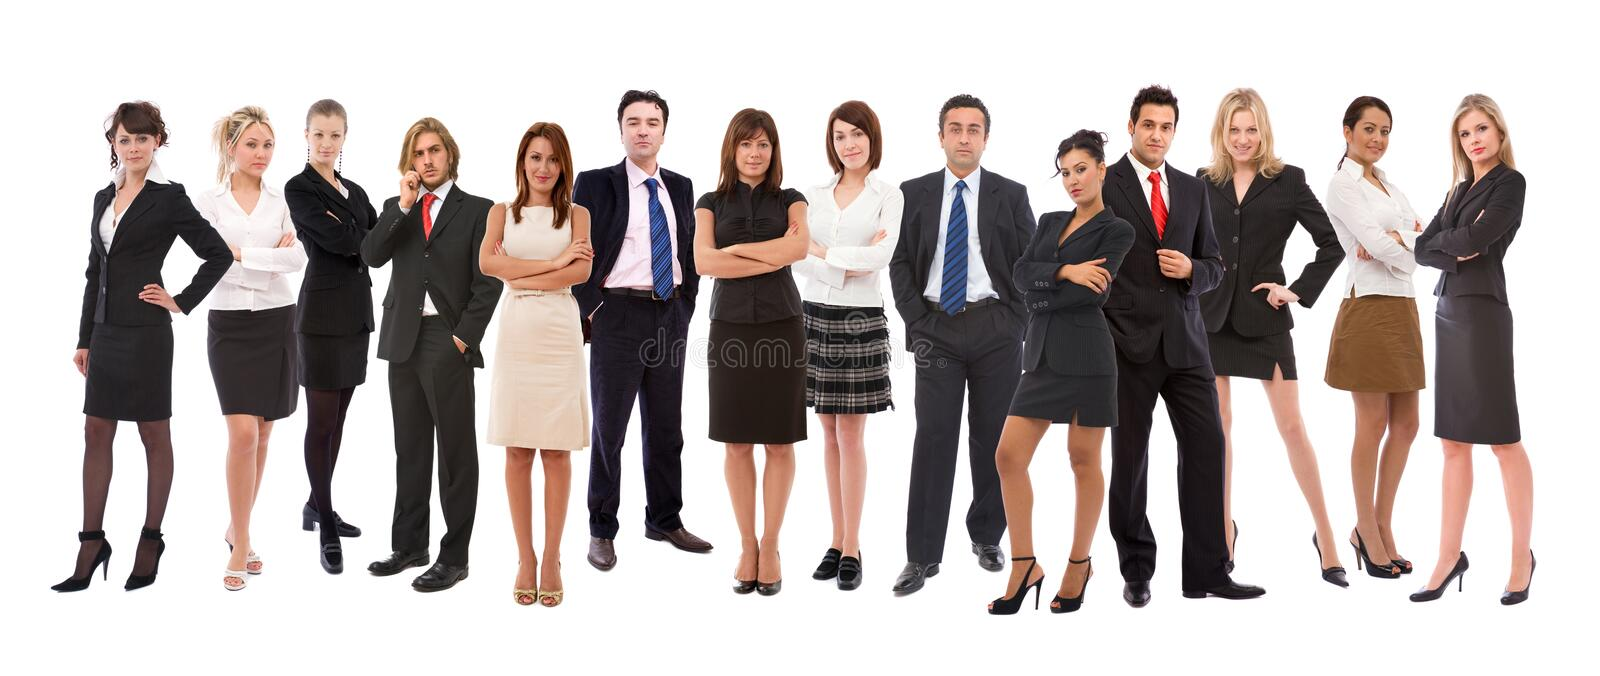 Business people. Lots of different business people on white background royalty free stock photo